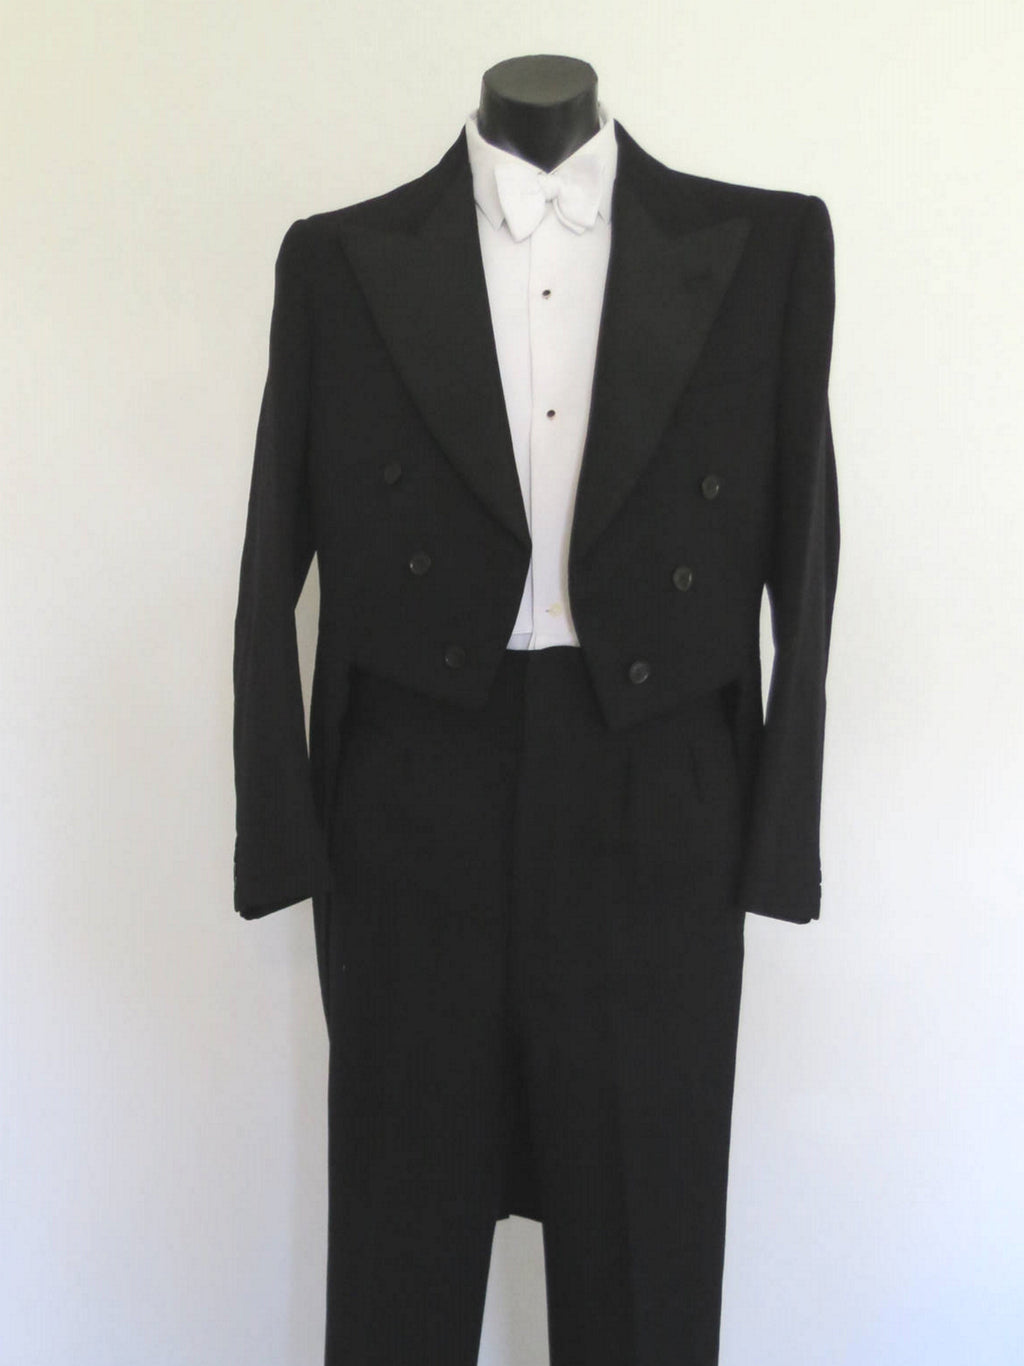 1960s vintage tails suit formal high waisted pants